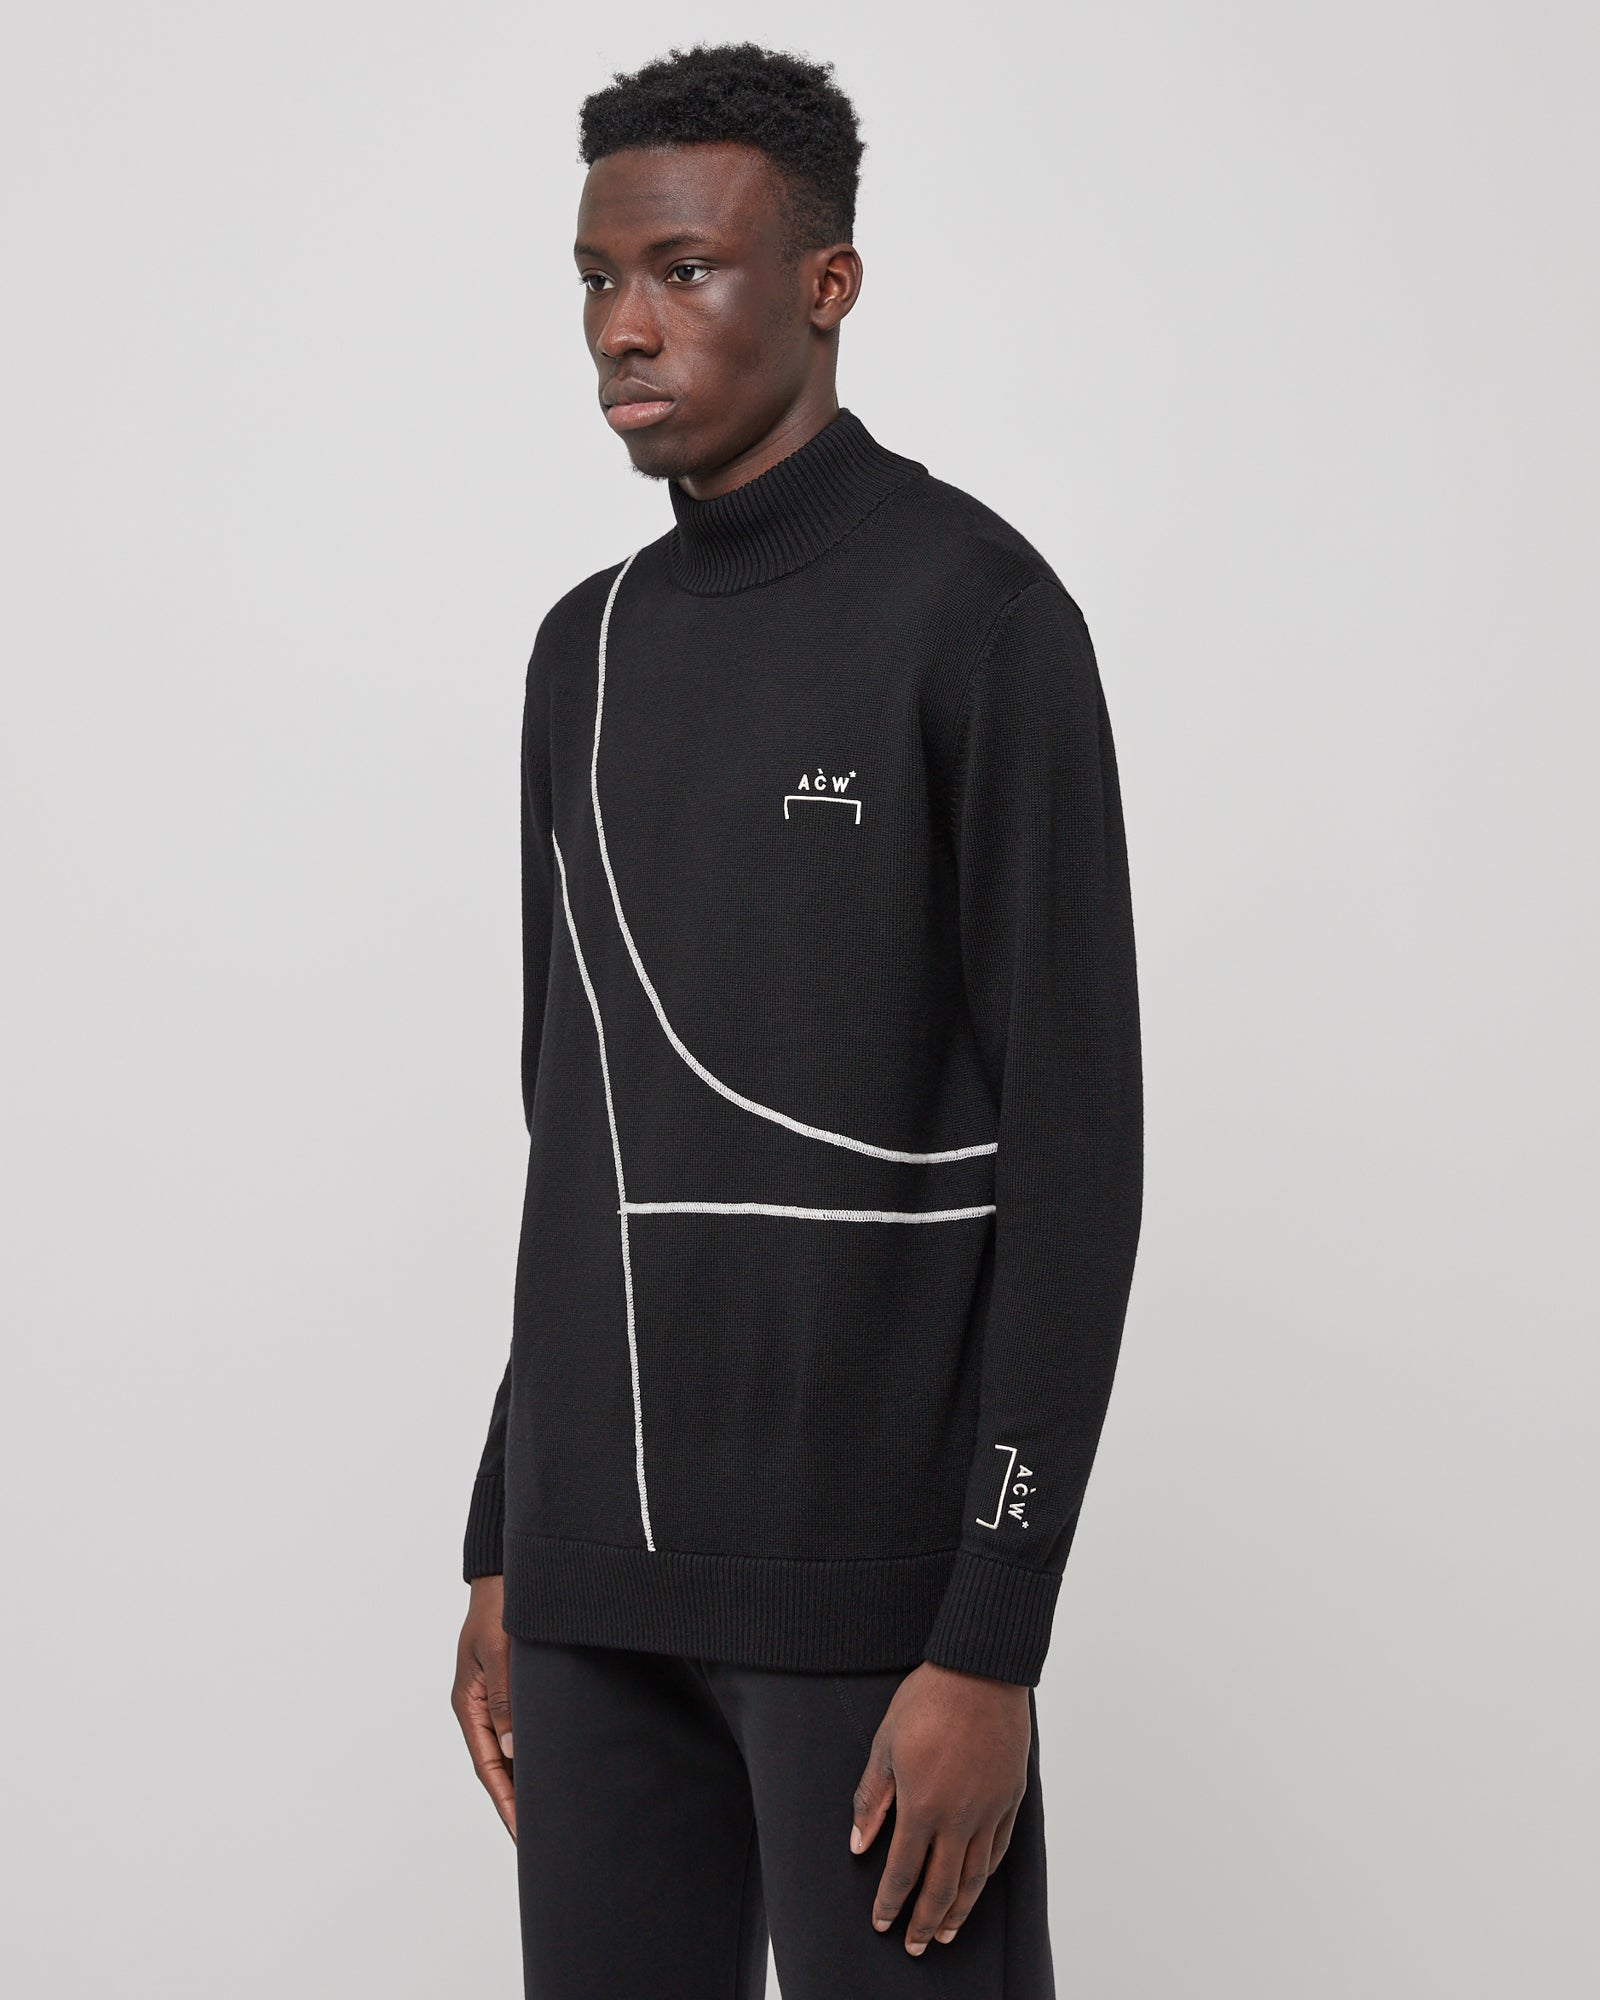 3D Rubberised Turtleneck in Black